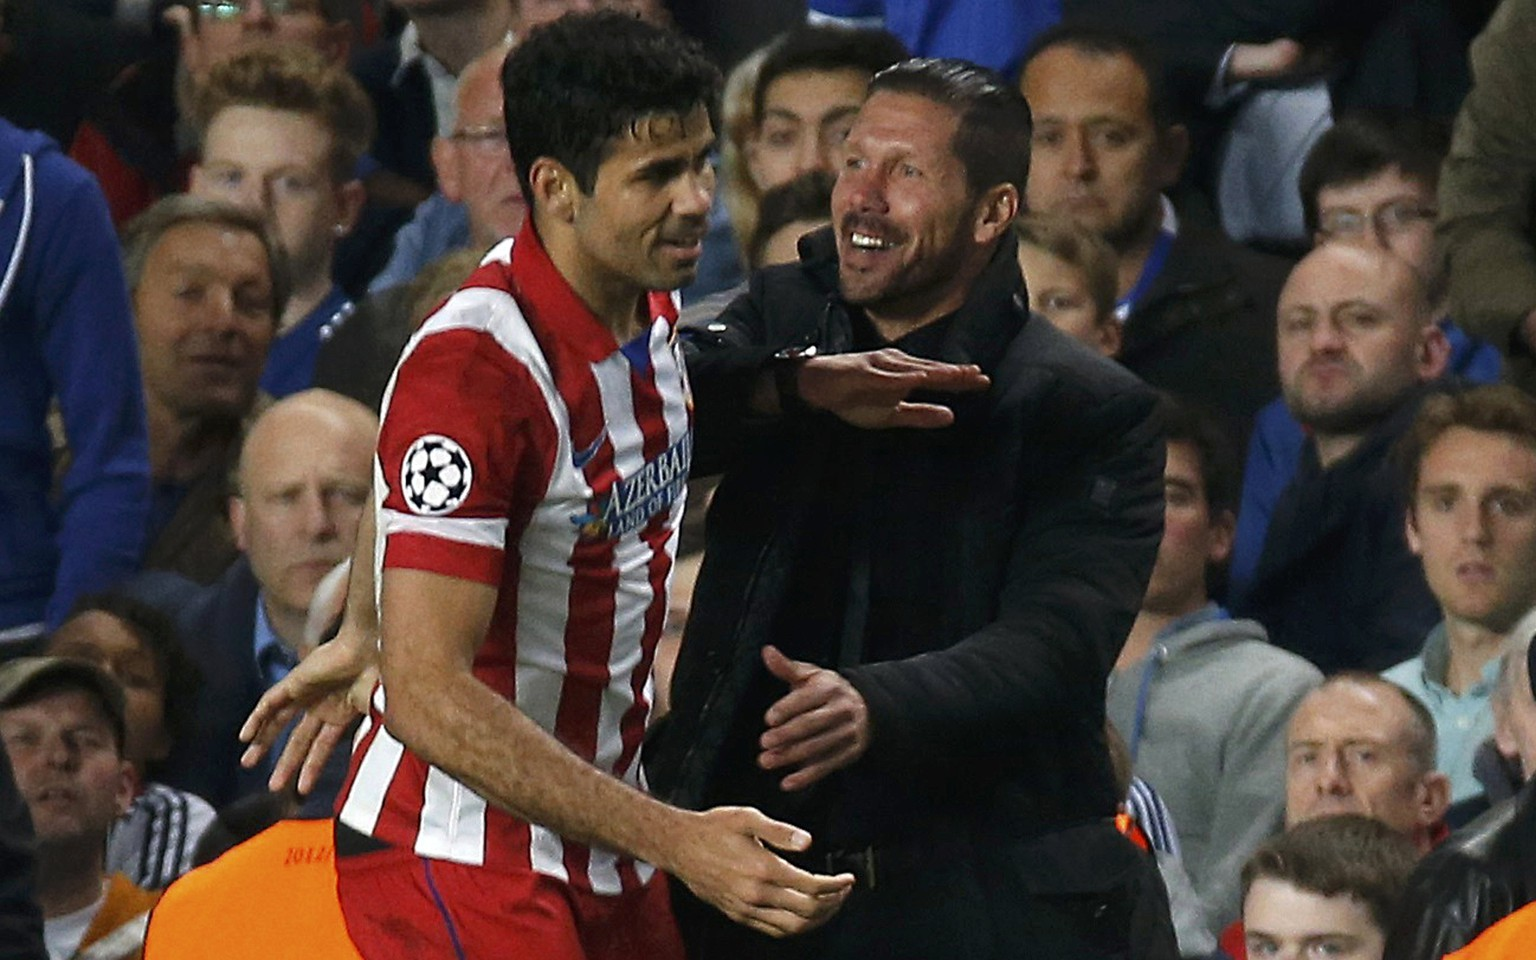 Atletico Madrid's Diego Costa (L) celebrates with team coach Diego Simeone after scoring a penalty shot for the team during their Champions League semi-final second leg soccer match against Chelsea at Stamford Bridge Stadium in London April 30, 2014.      REUTERS/Sergio Perez (BRITAIN  - Tags: SPORT SOCCER)